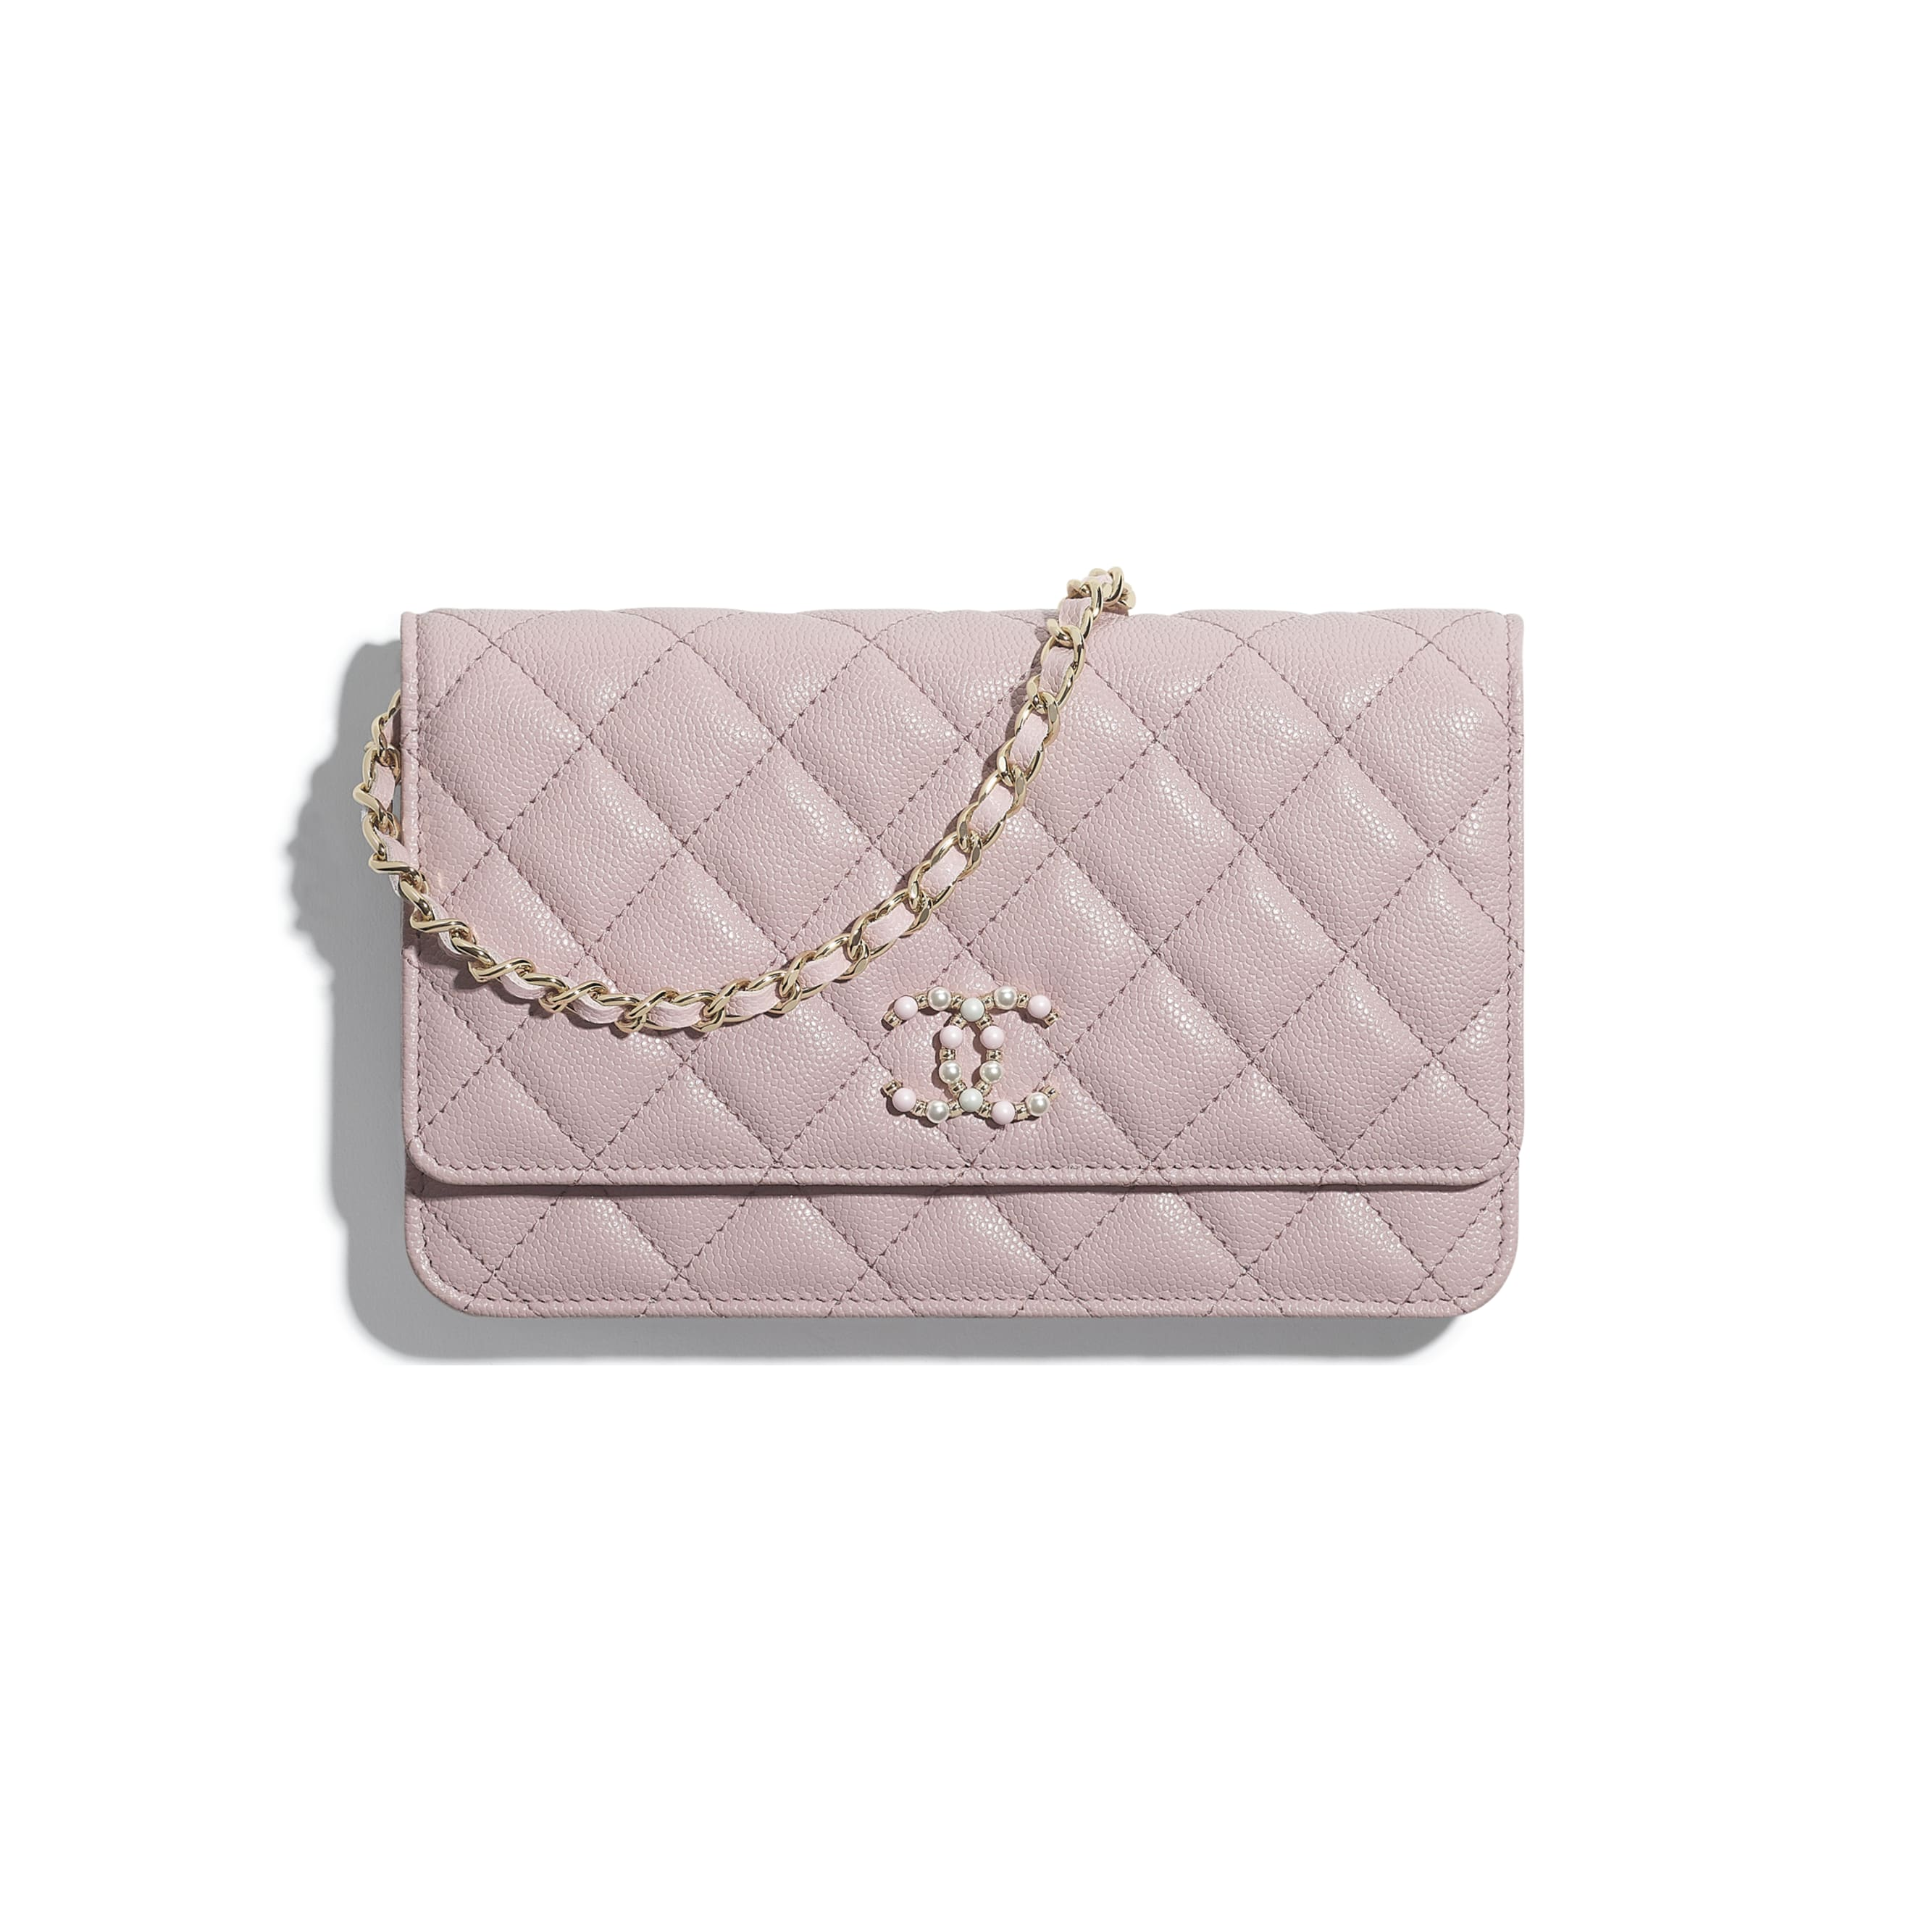 Wallet On Chain - Light Pink - Grained Calfskin & Gold-Tone Metal - CHANEL - Default view - see standard sized version